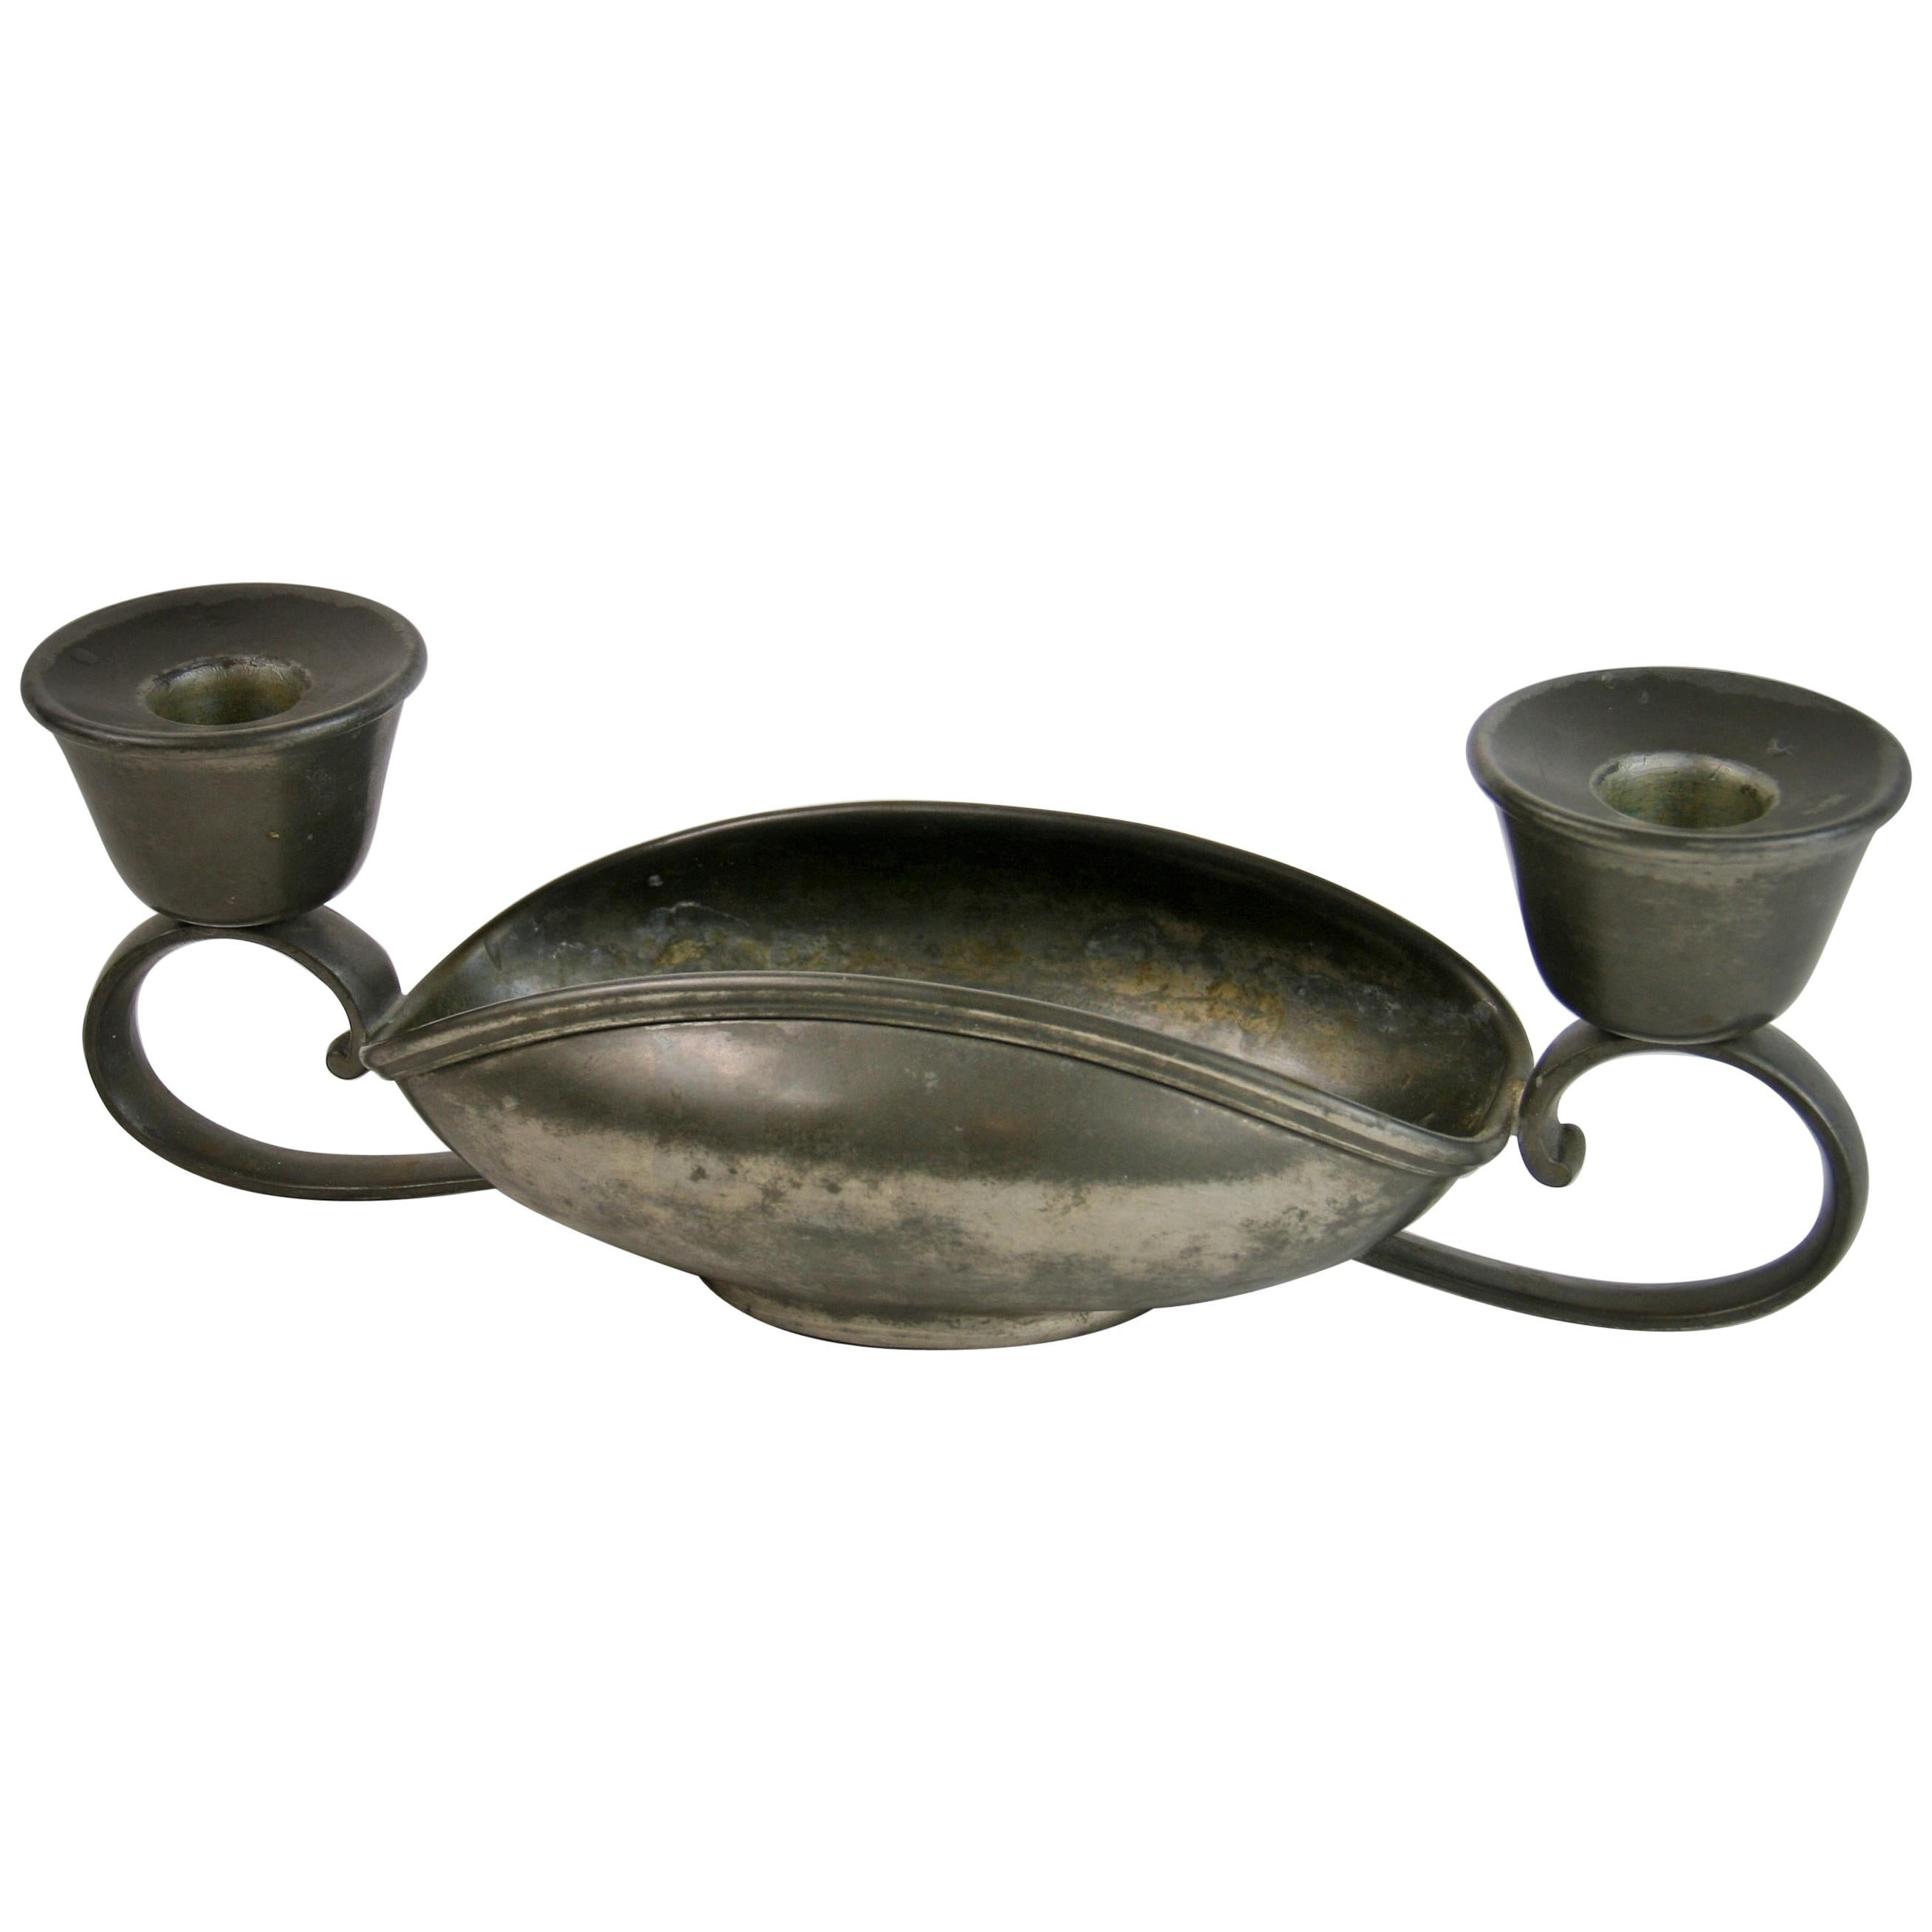 Pewter Candleholder by Rice Pewter